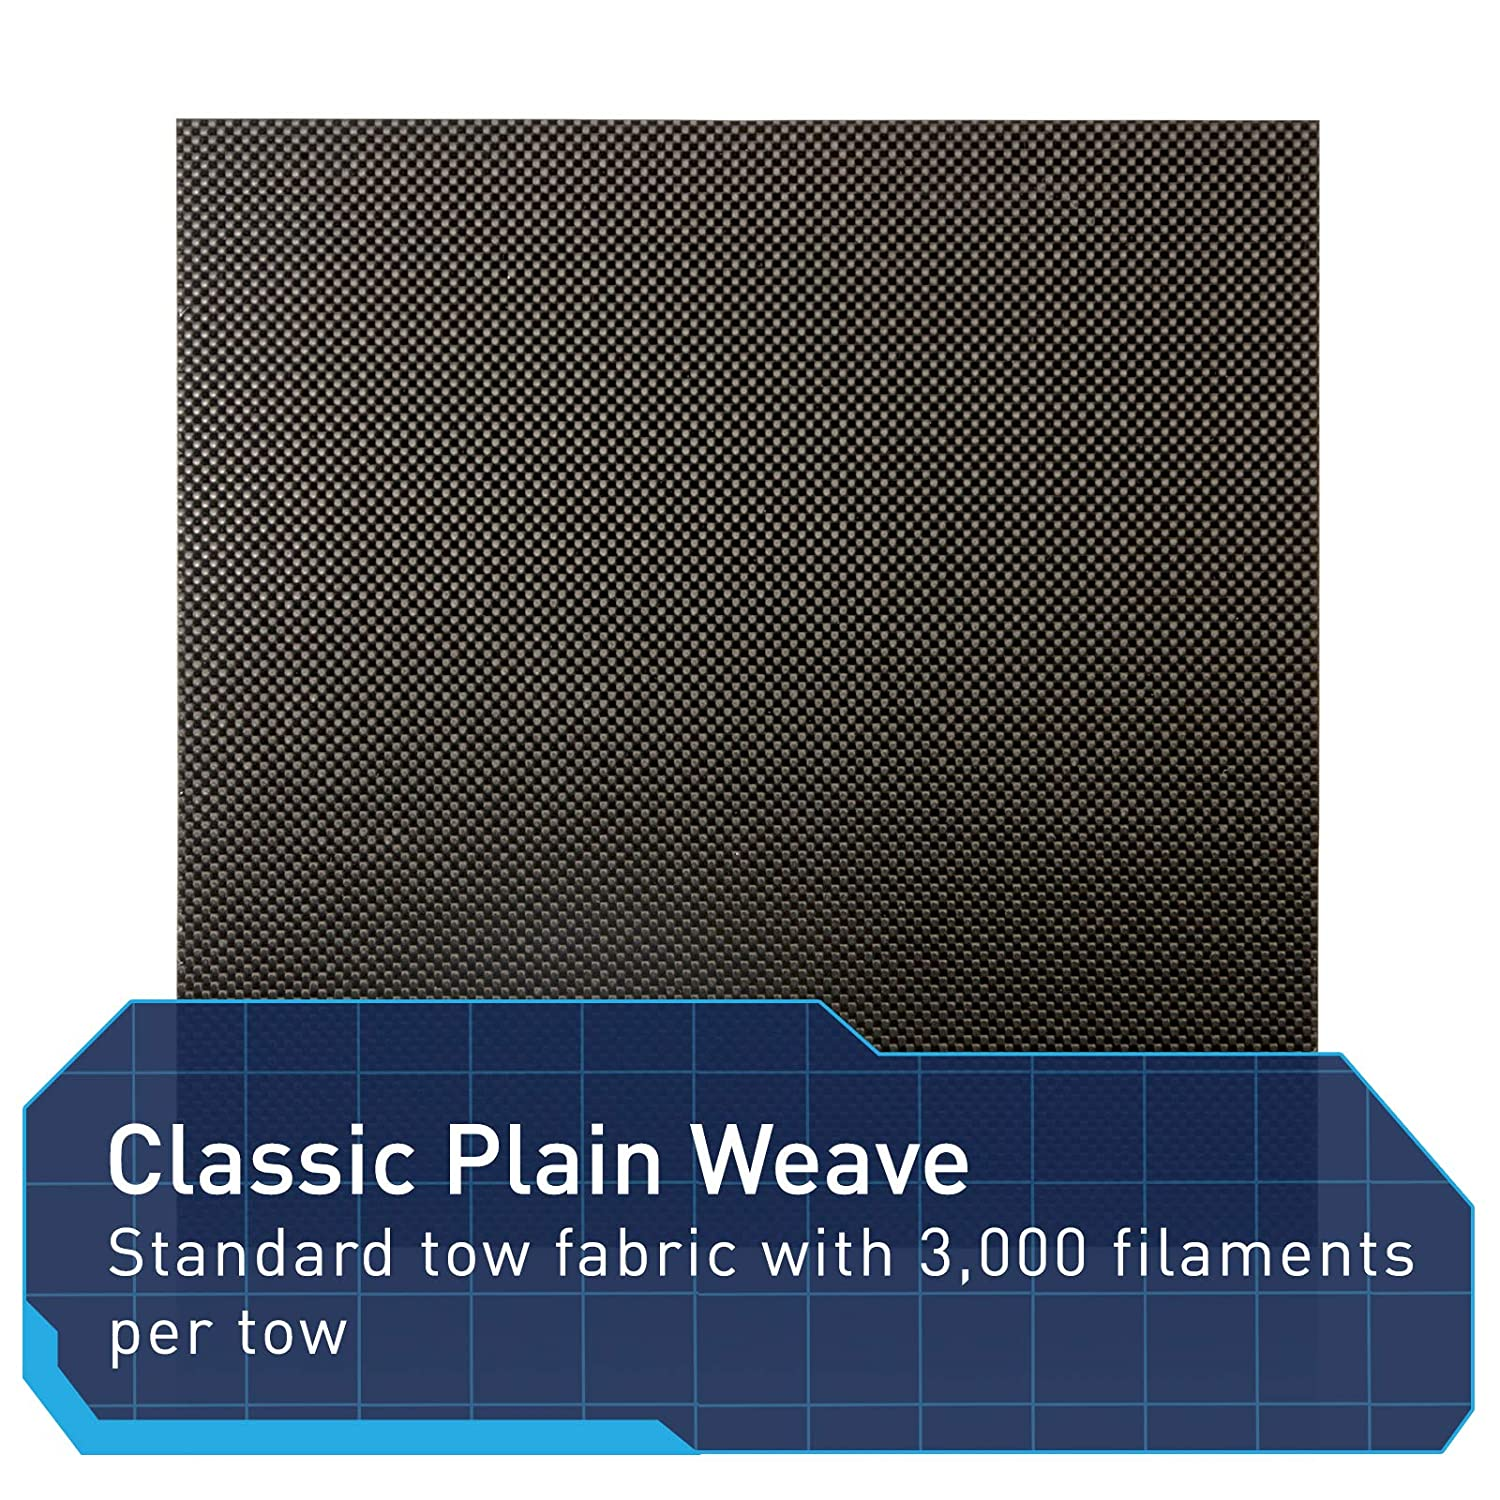 Perfect for Custom Projects 12 x 12 x 1//4 Elevated Materials Carbon Fiber Sheet Heavy Duty Flat Panel Sheeting with Plain Woven Pattern